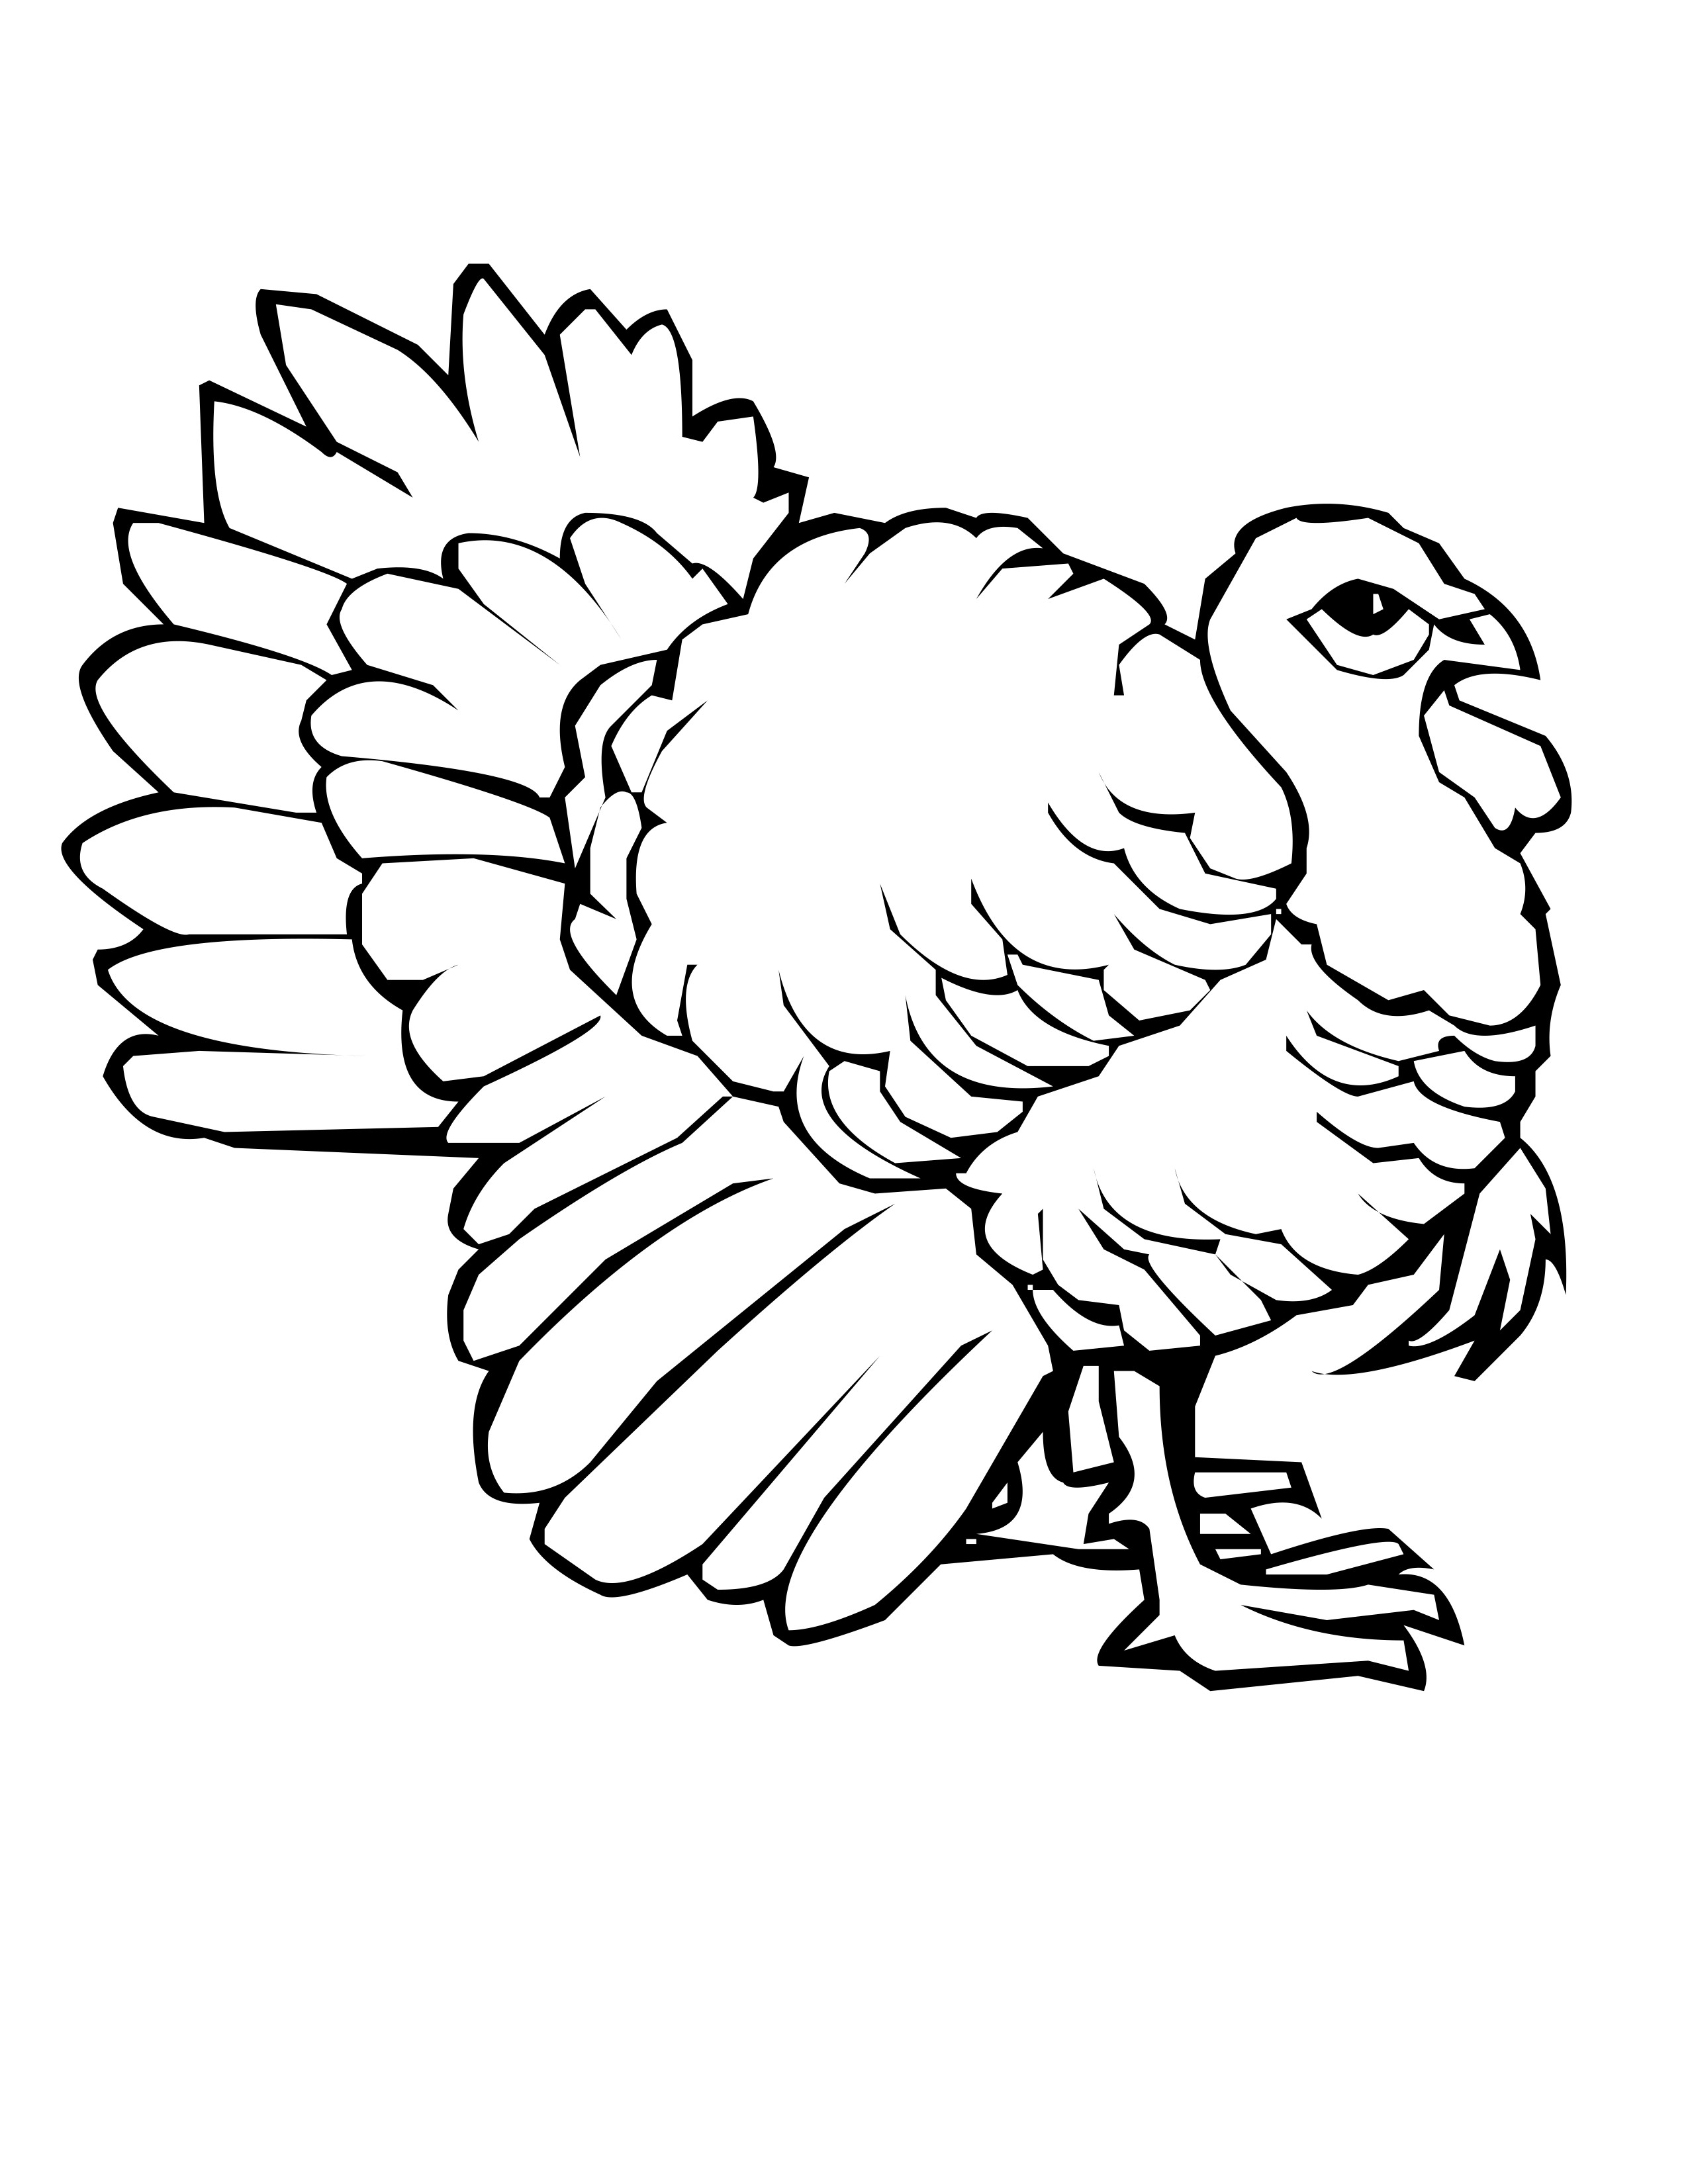 Free Turkey Drawing Pictures, Download Free Clip Art, Free.